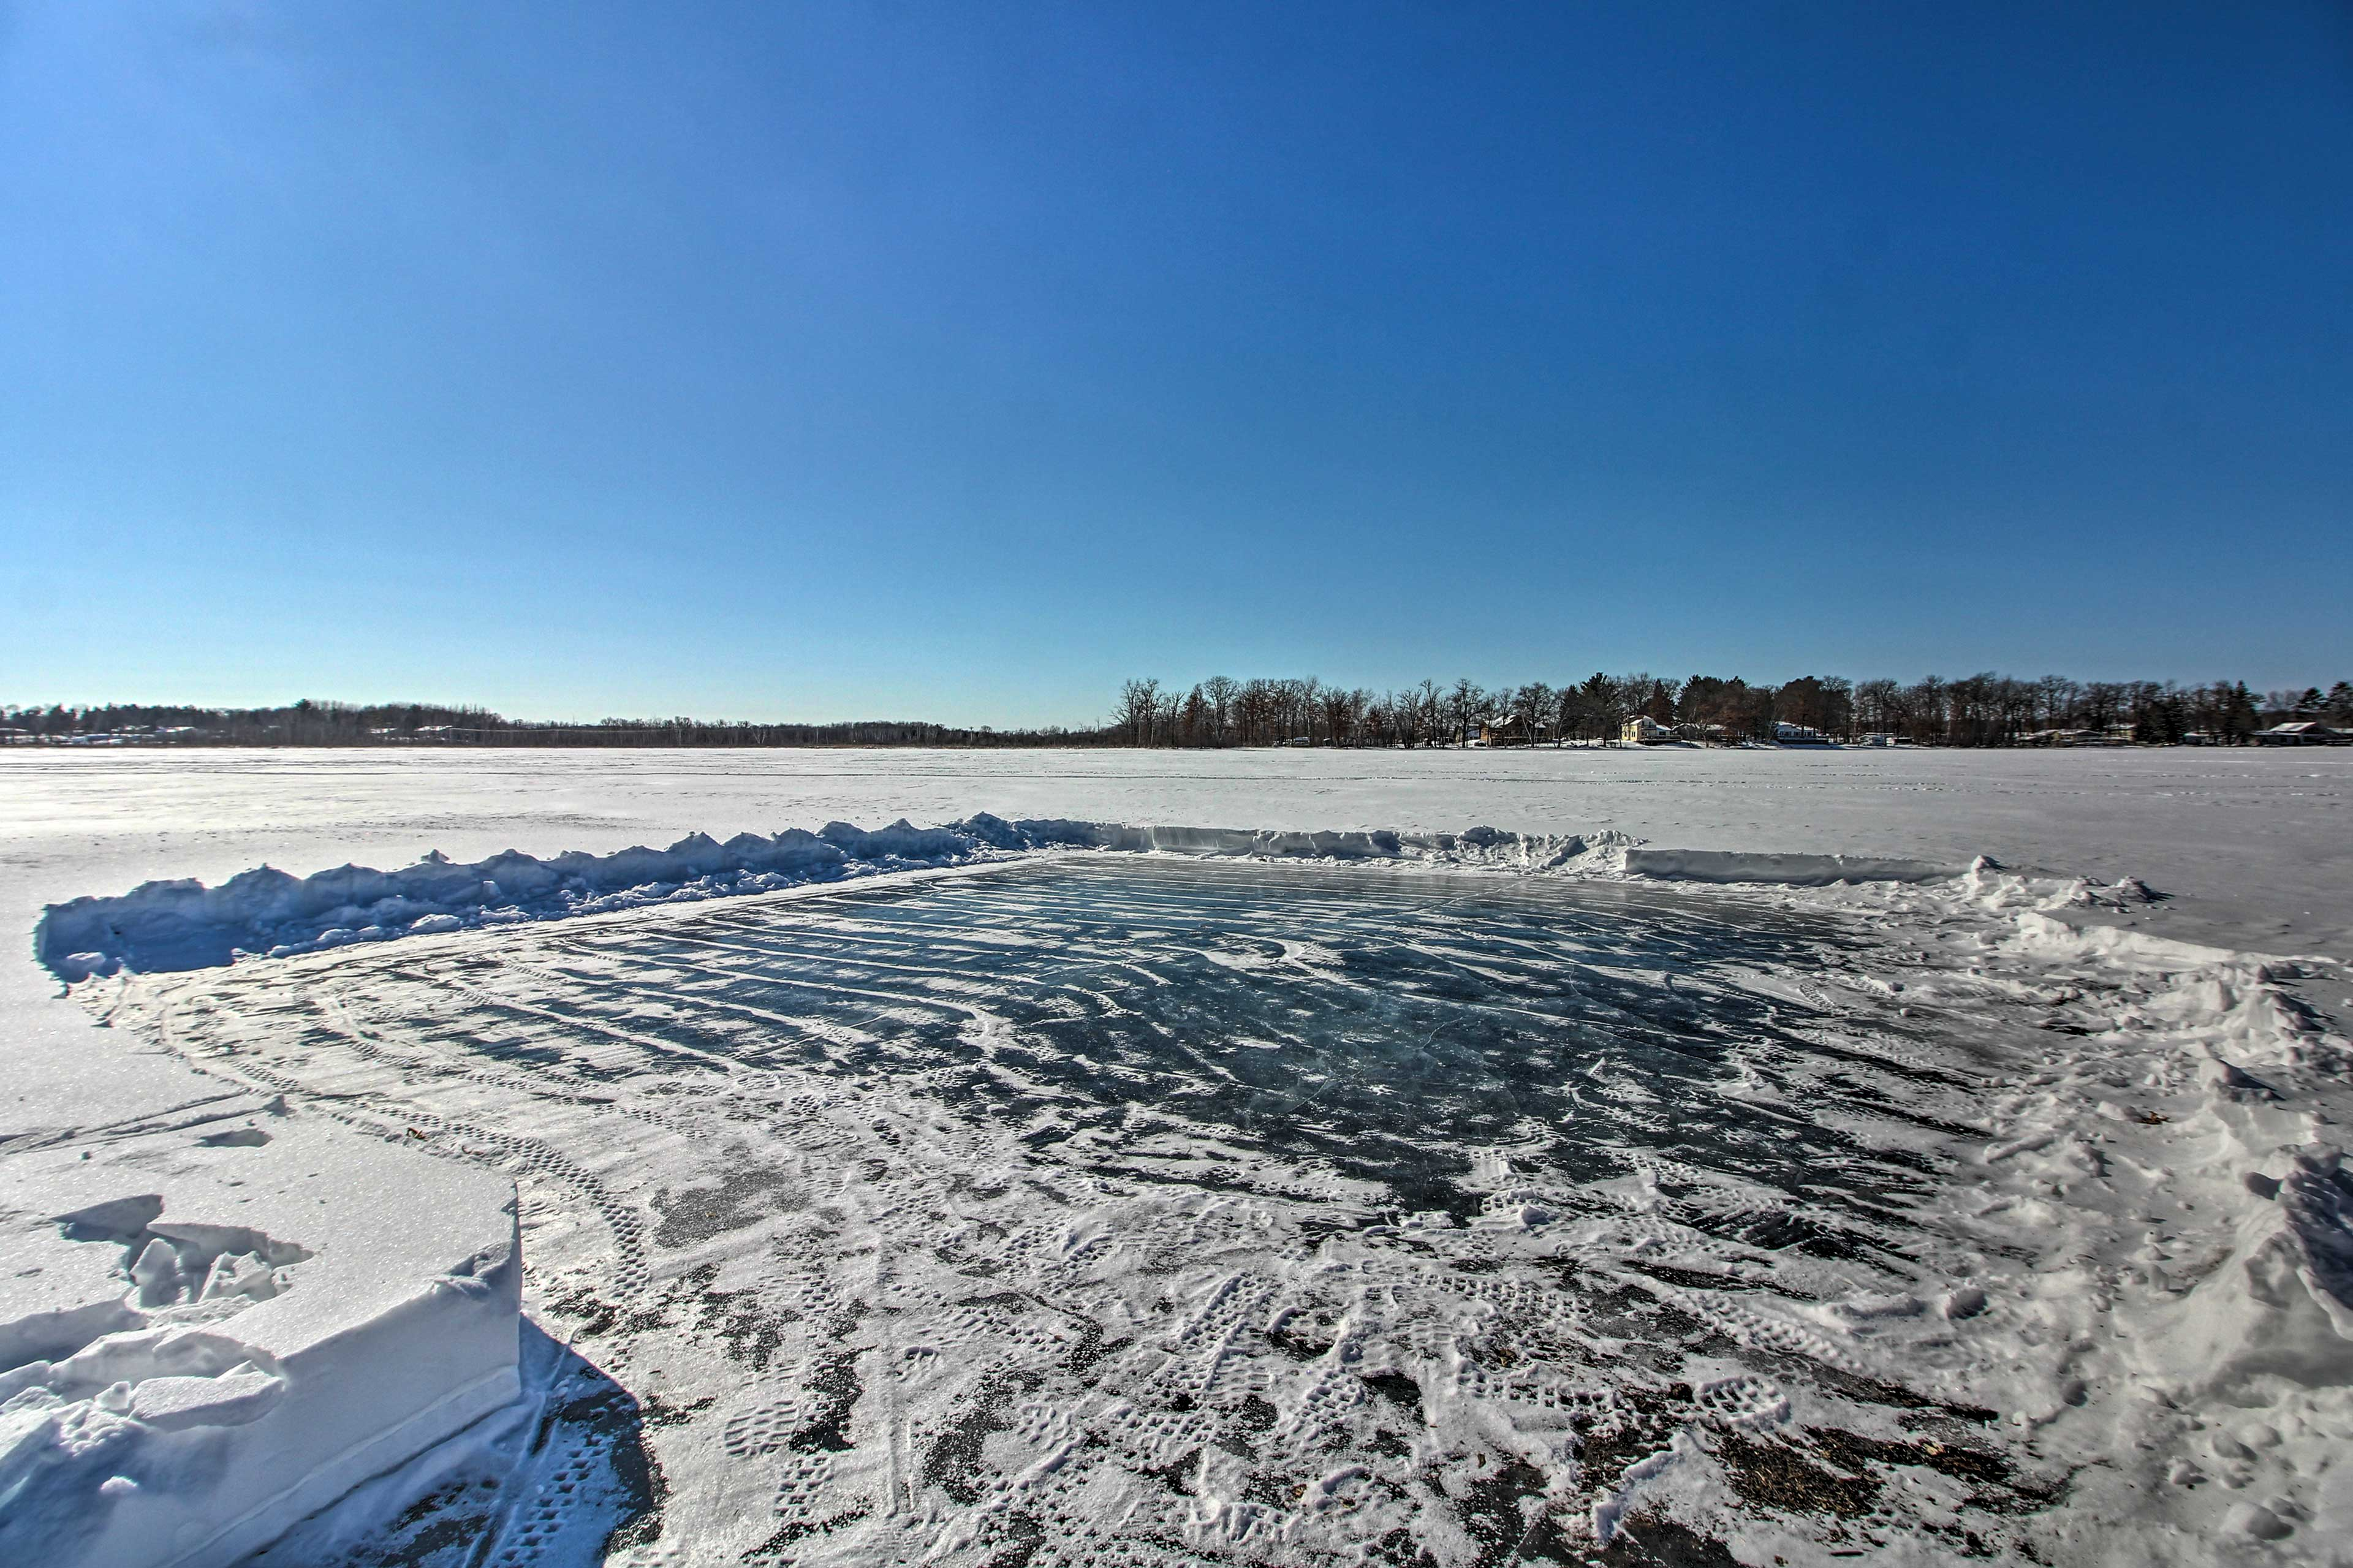 Shovel off the lake for a game of pond hockey!